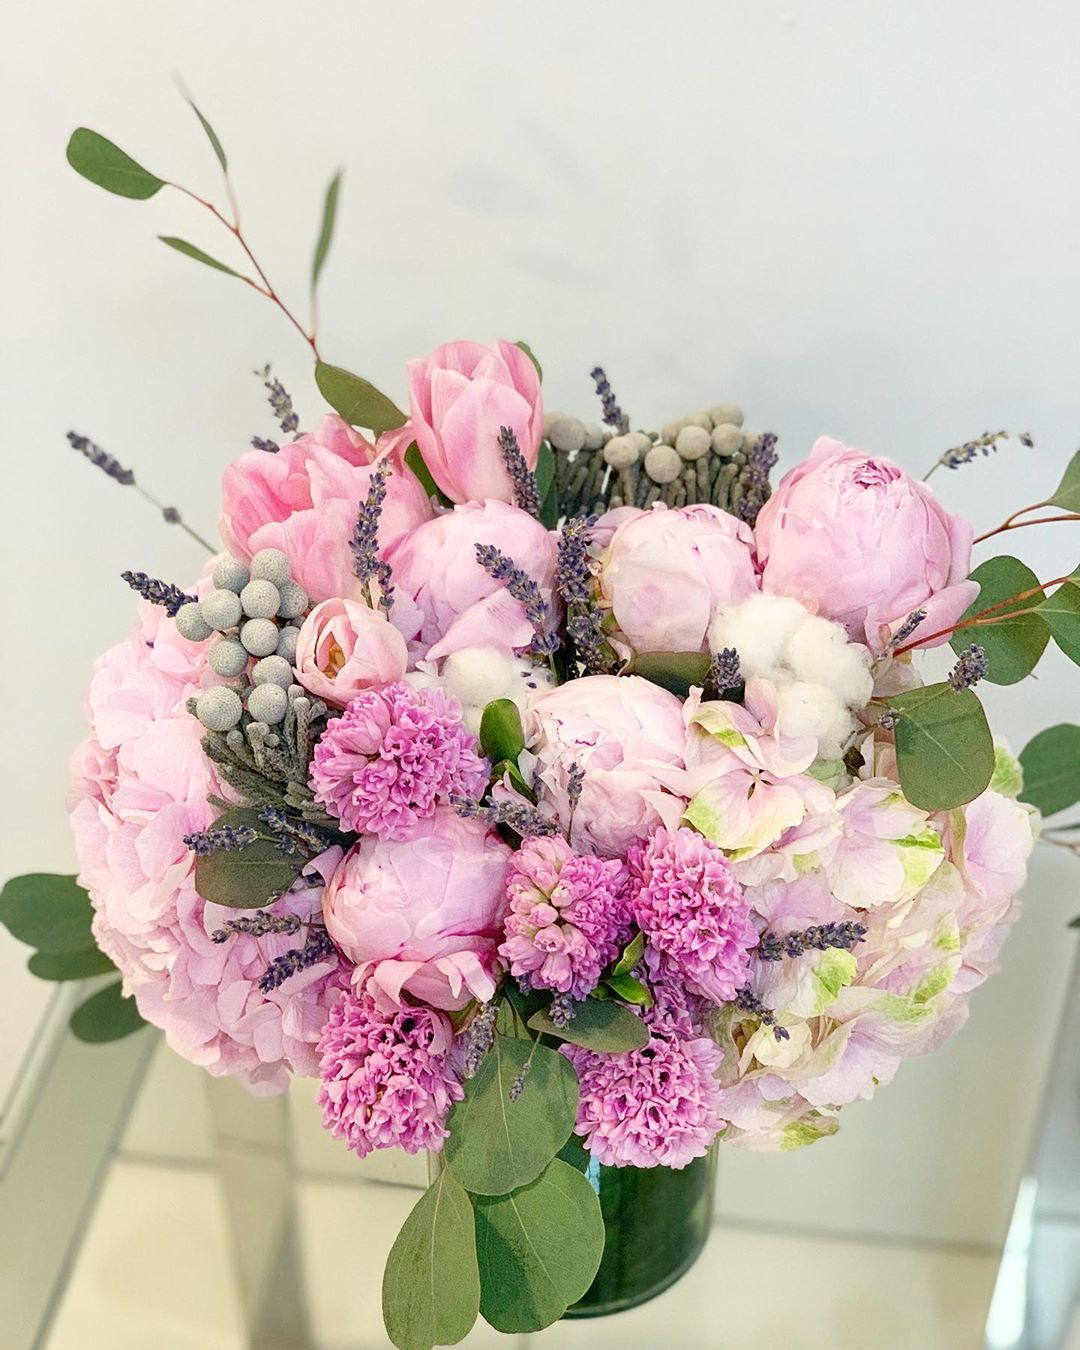 Vased arrangement of flowers